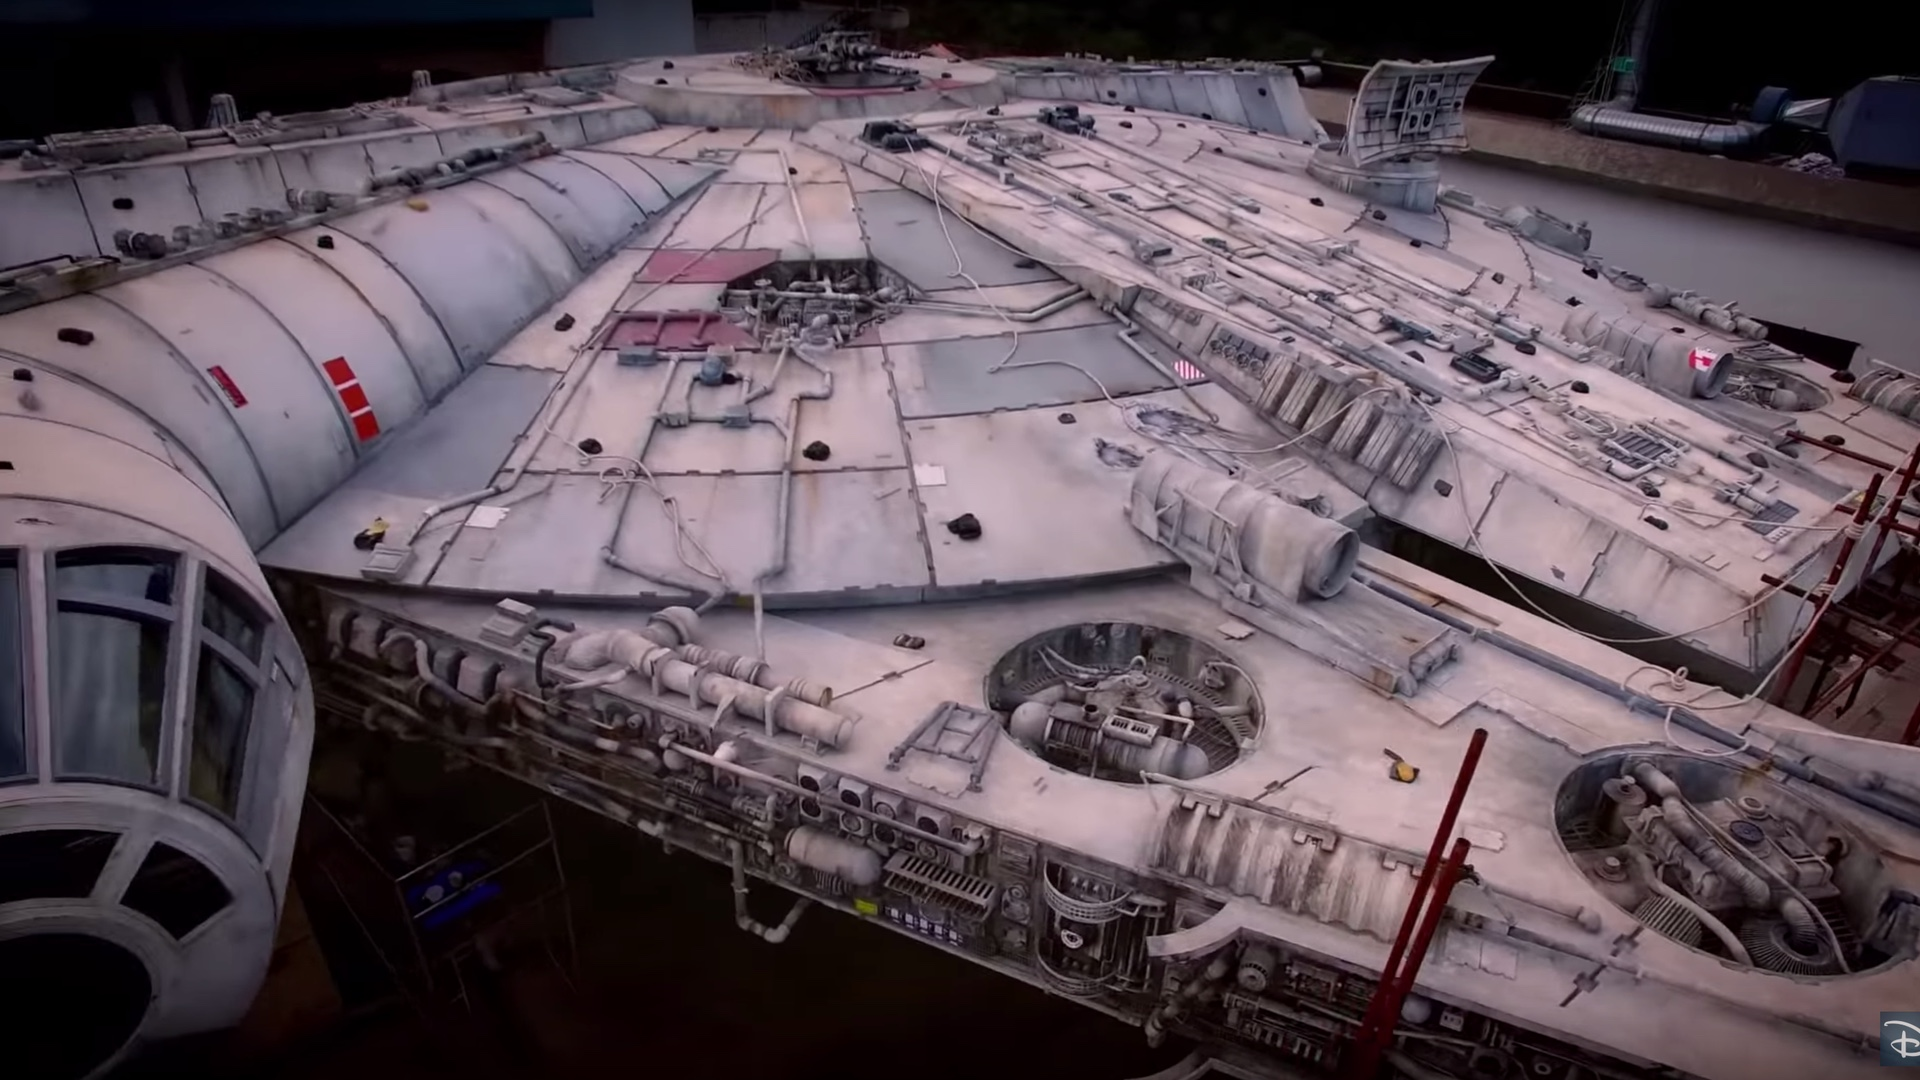 listen-to-john-williams-new-musical-score-for-star-wars-galaxys-edge-and-teaser-for-the-millennium-falcon-ride-social.jpg